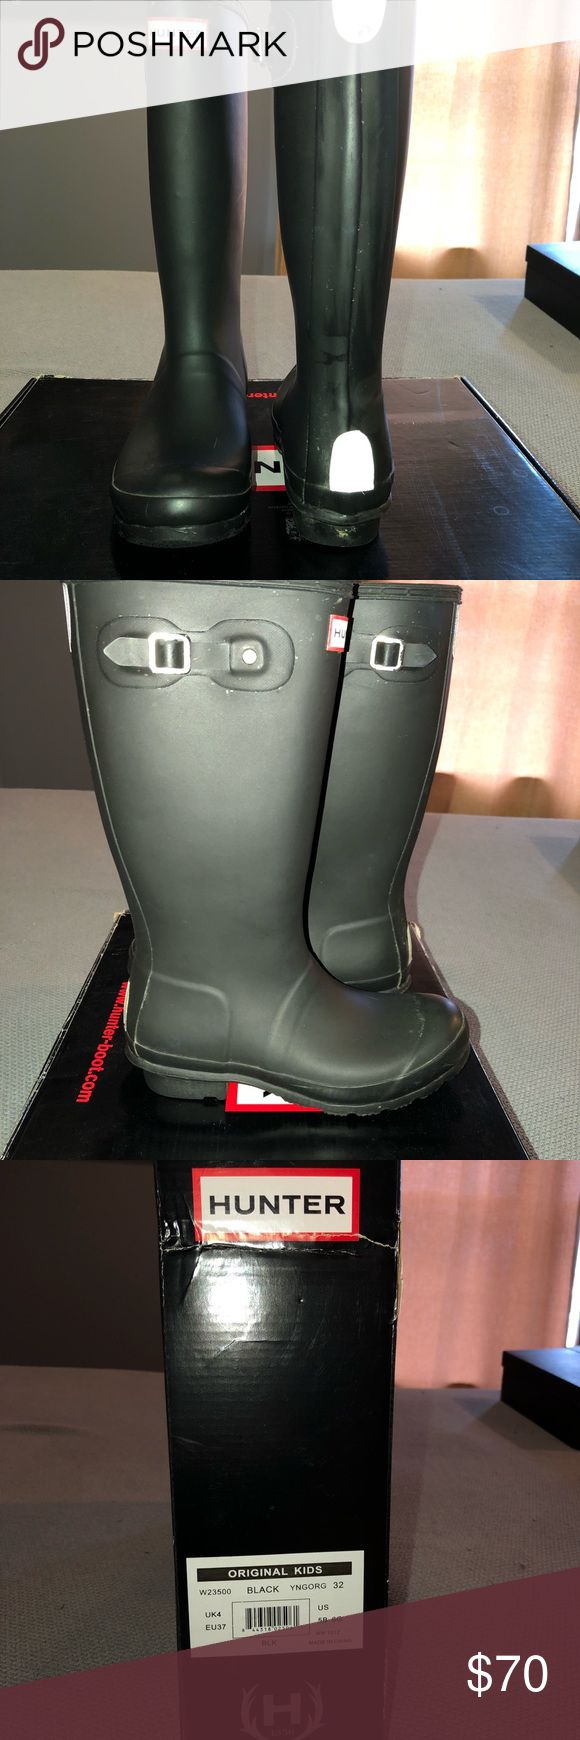 Kids Hunter Rain boots Kids Hunter Rain boots Black US size 5 but fit a woman size 7 Hunter Boots Shoes Boots